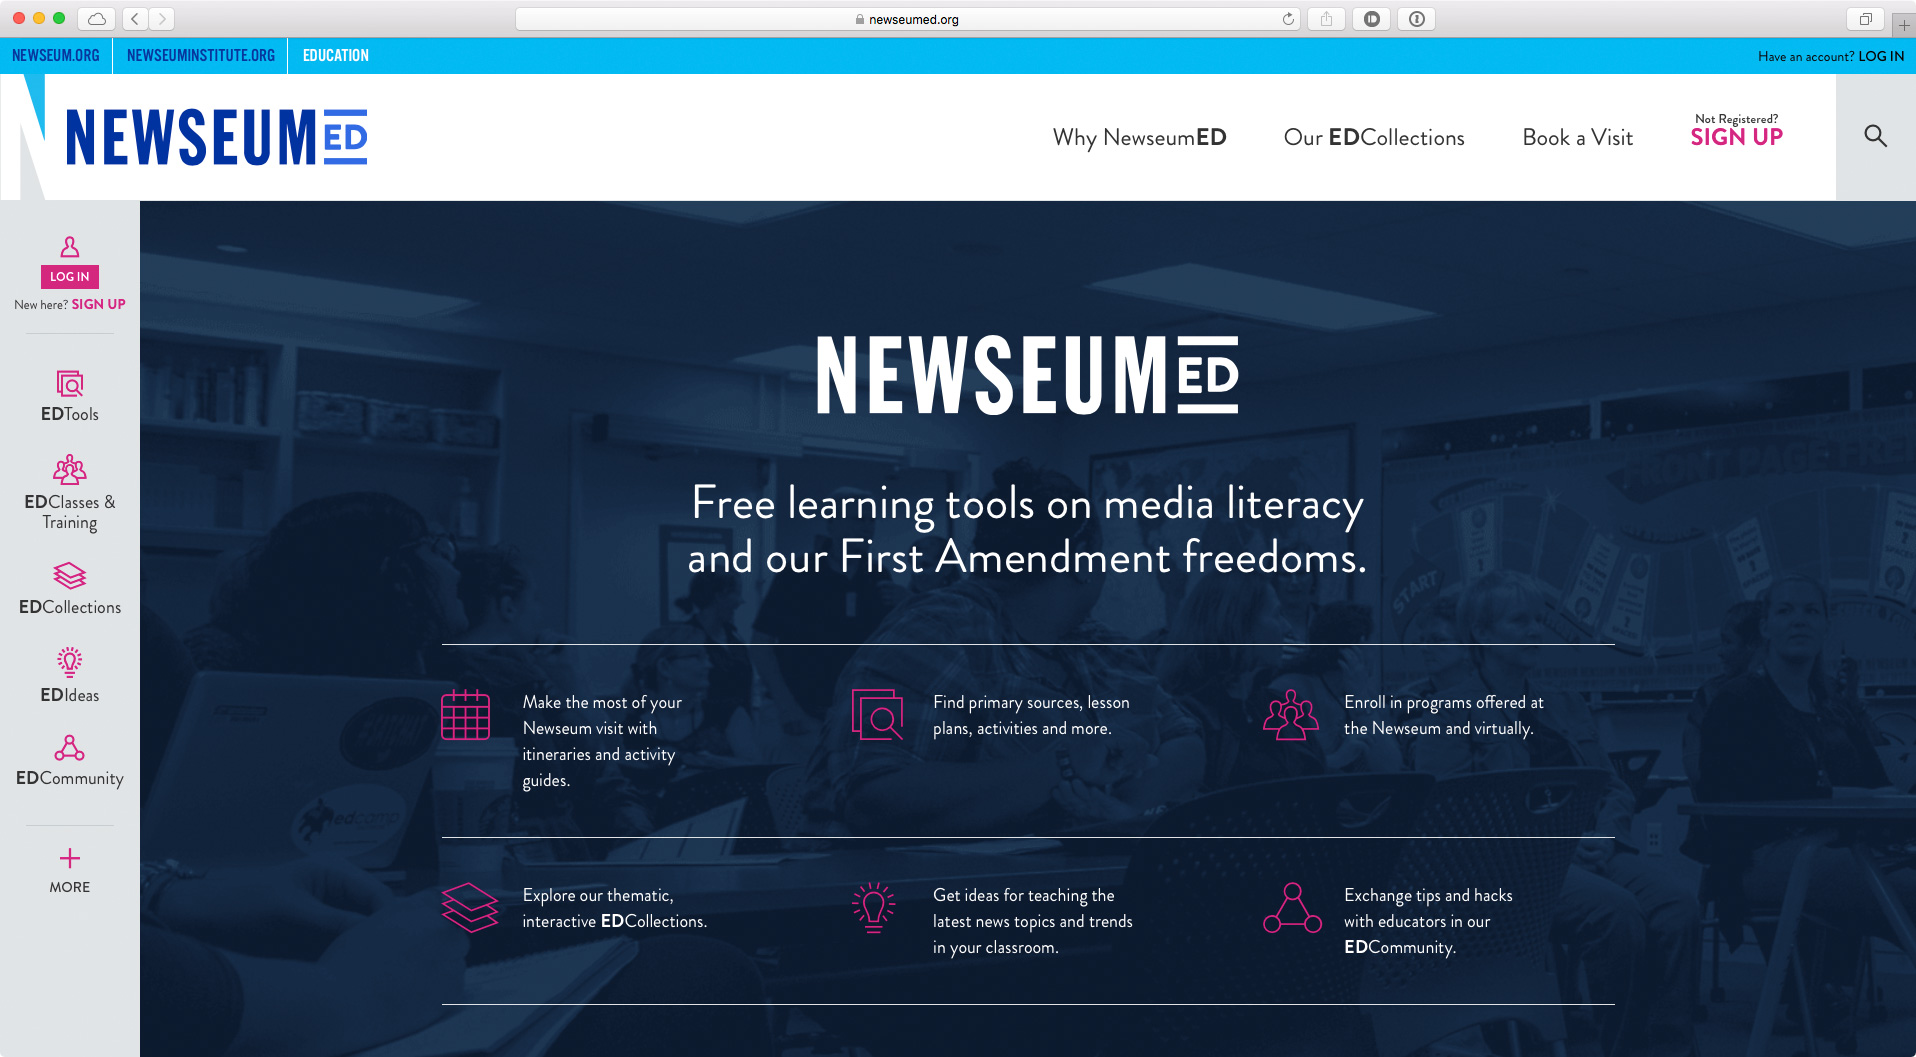 A screenshot of the NewseumEd home page after the redesign.